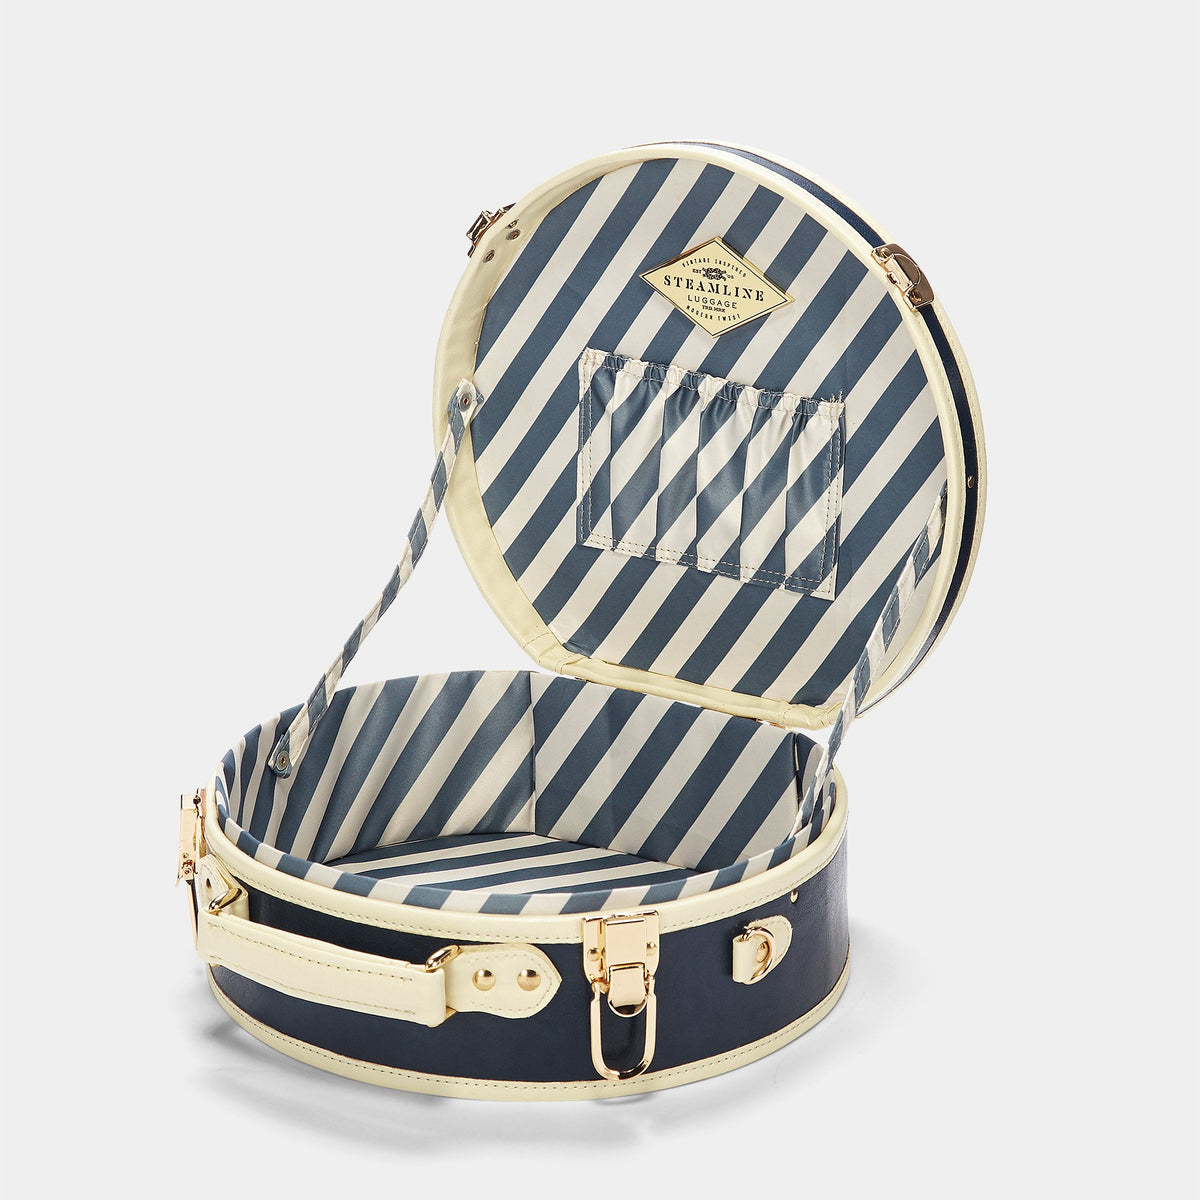 The Entrepreneur Hatbox Small in Navy - Vintage-Inspired Luggage - Interior Front